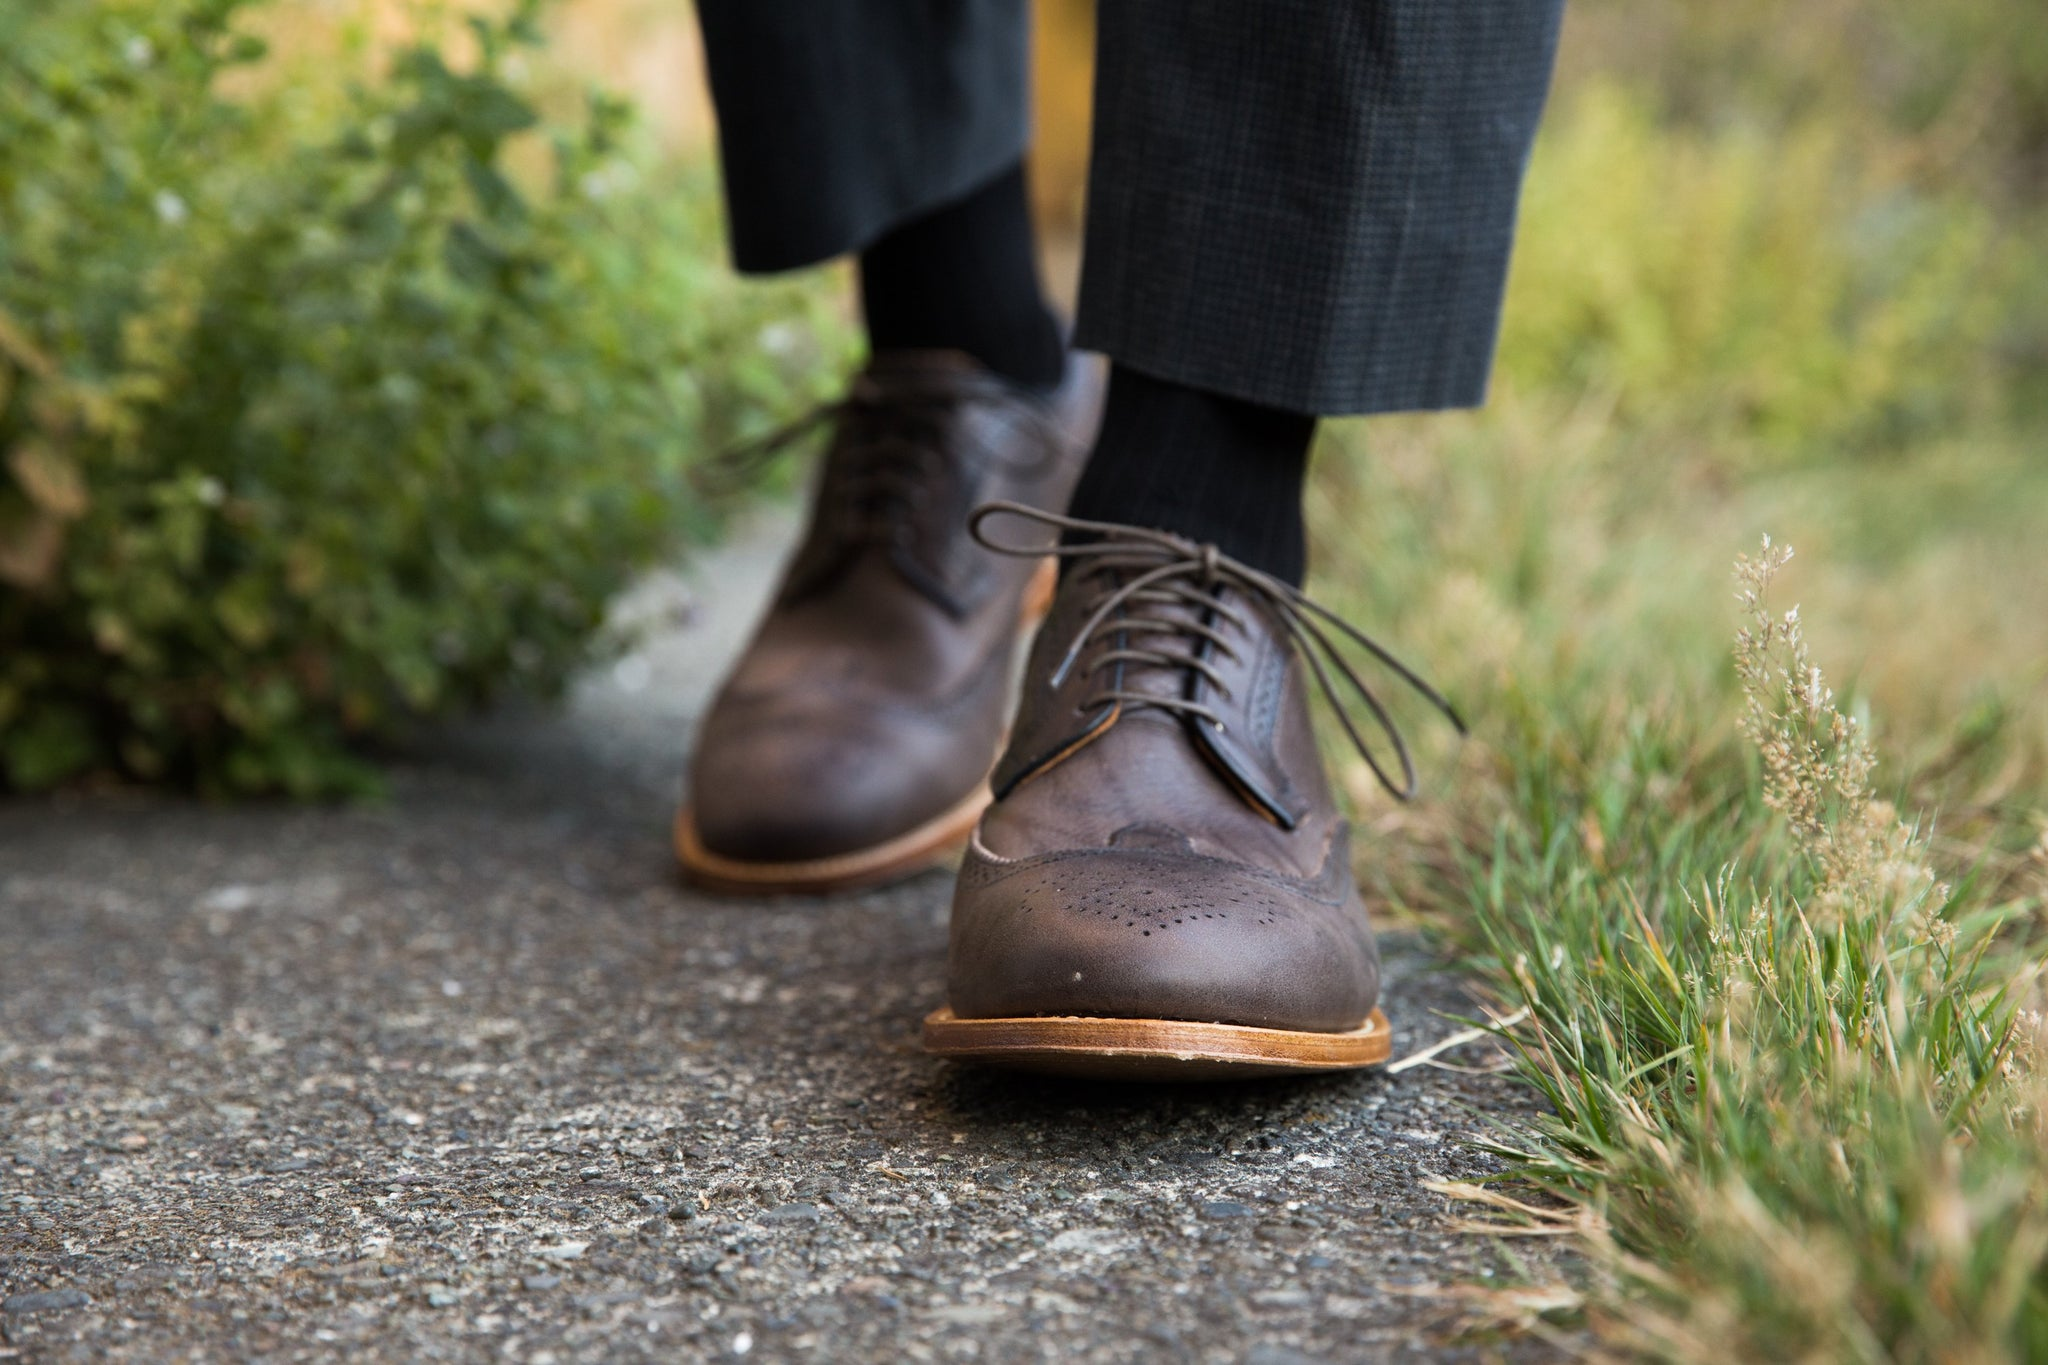 Introducing the Brogue Shoe and Brogue Boot